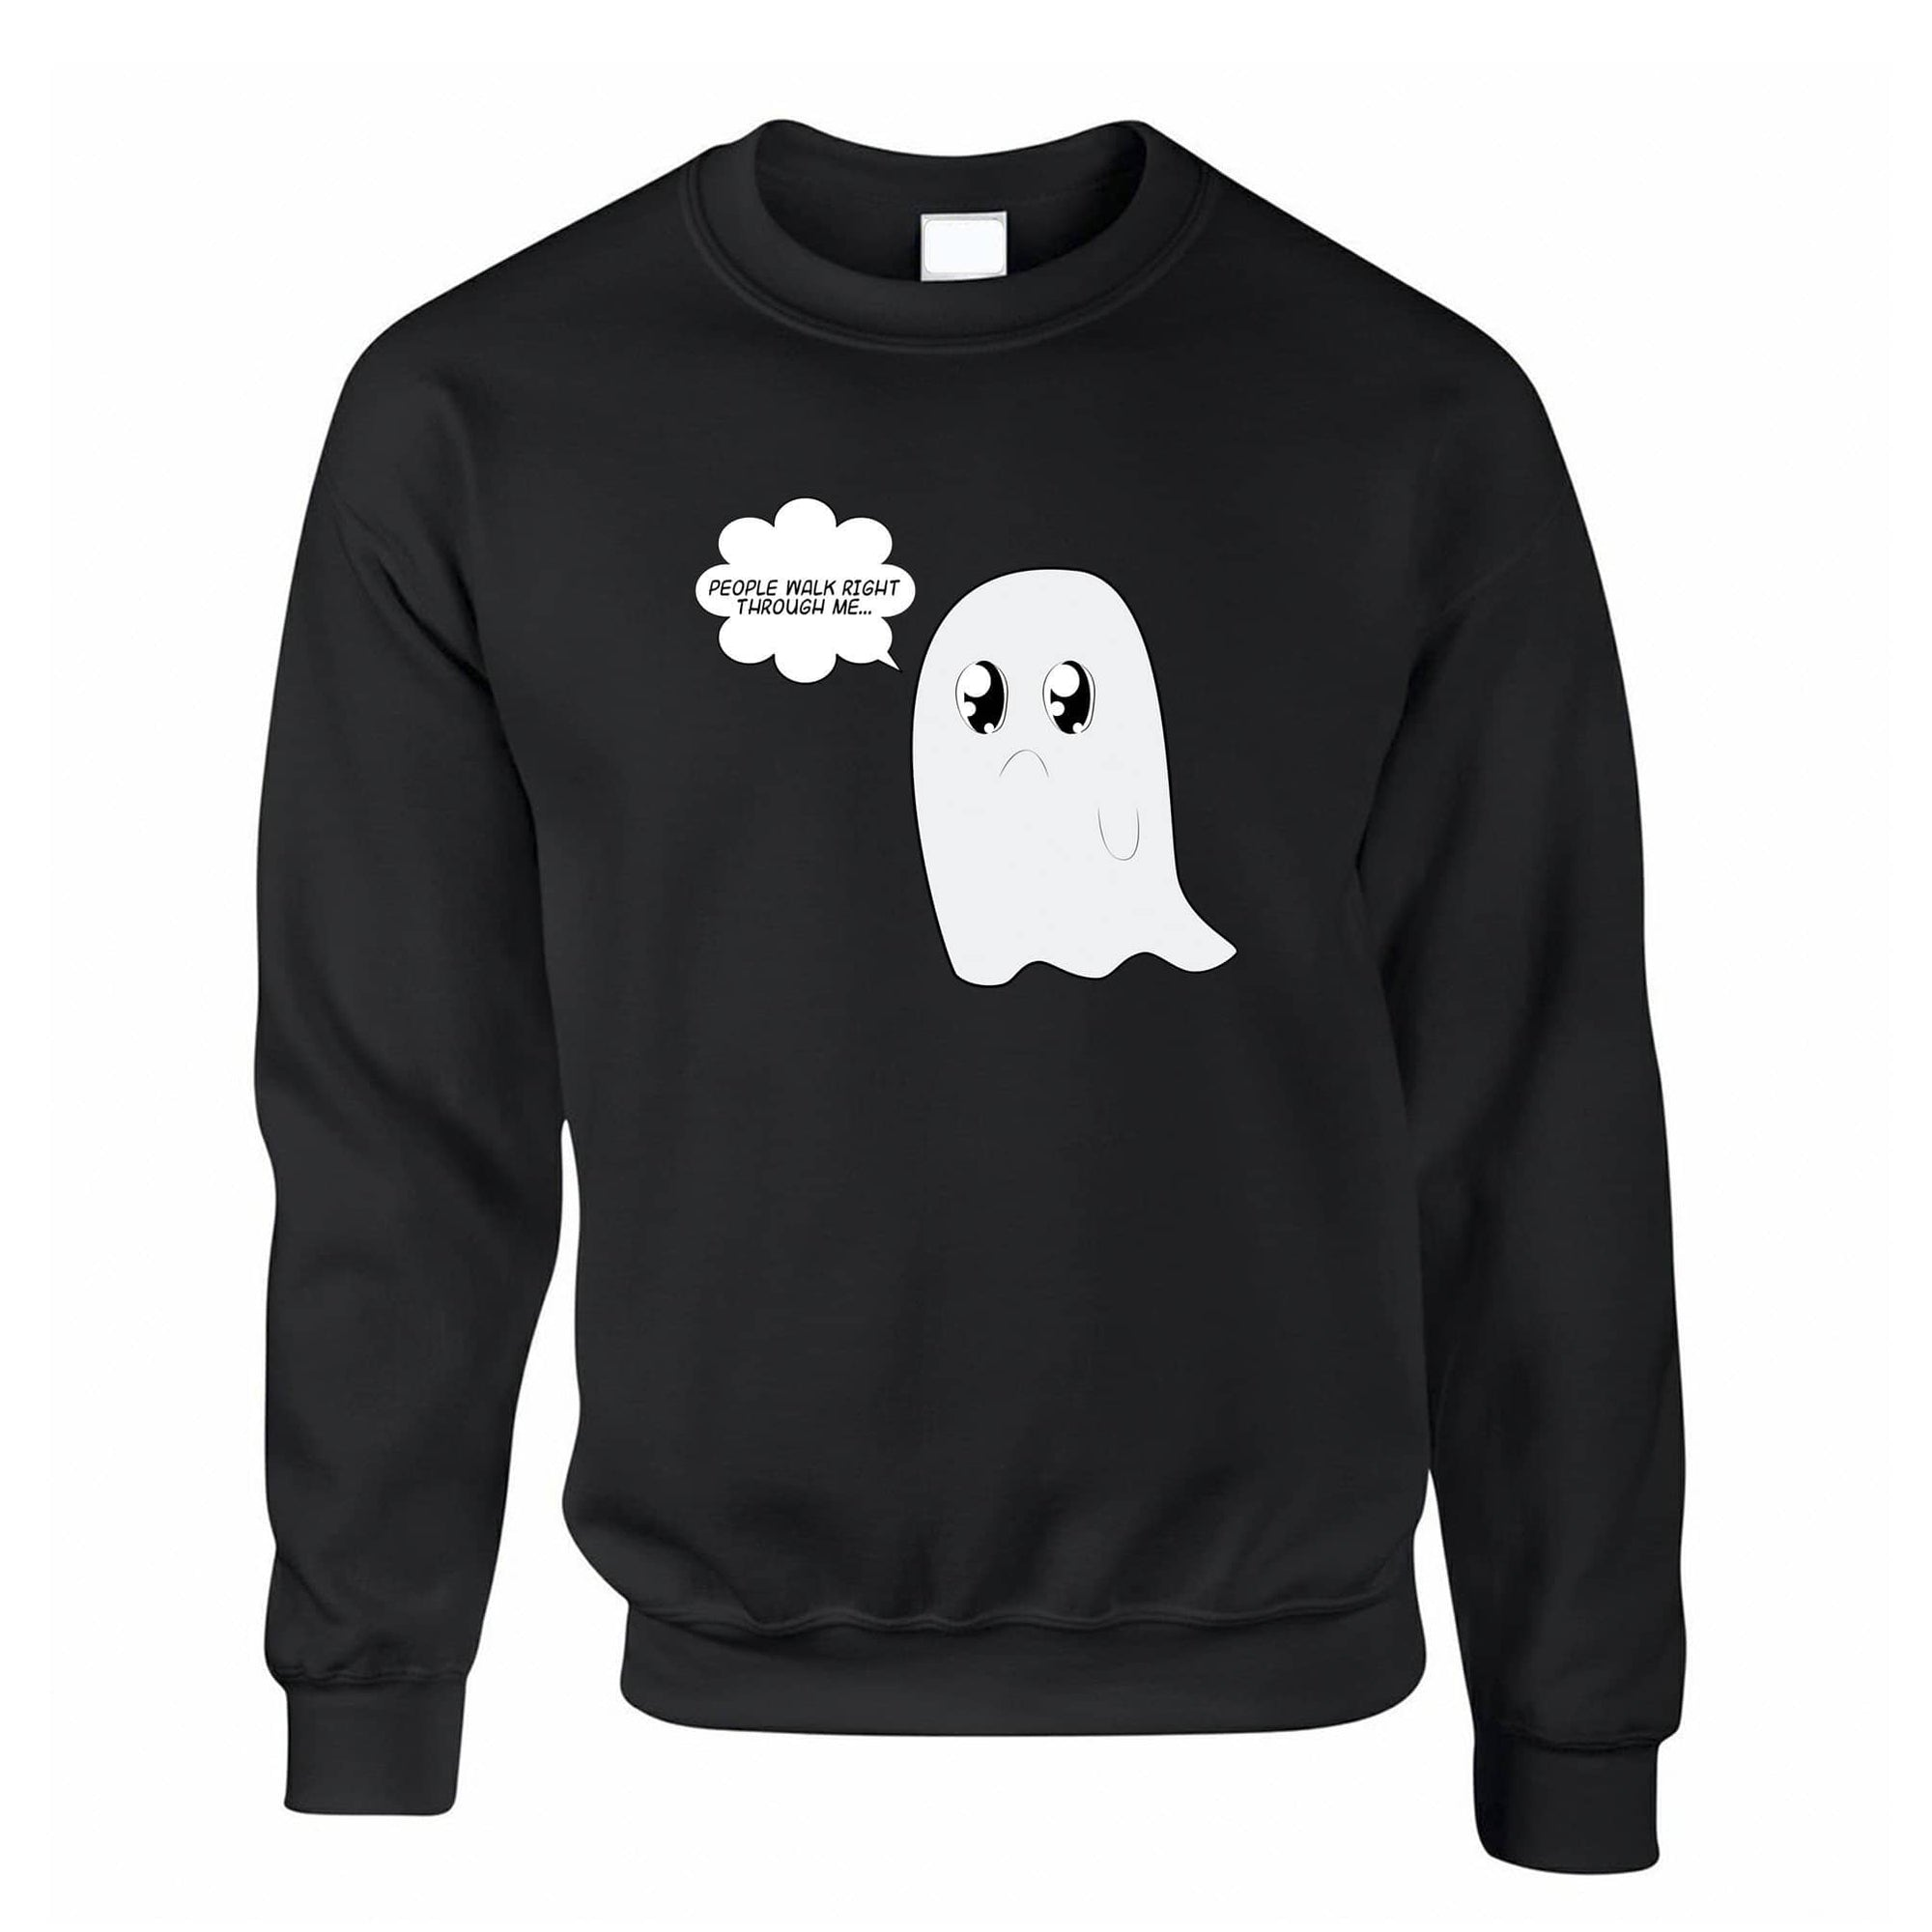 Cute Ghost Jumper People Walk Right Through Me Joke Sweatshirt Sweater